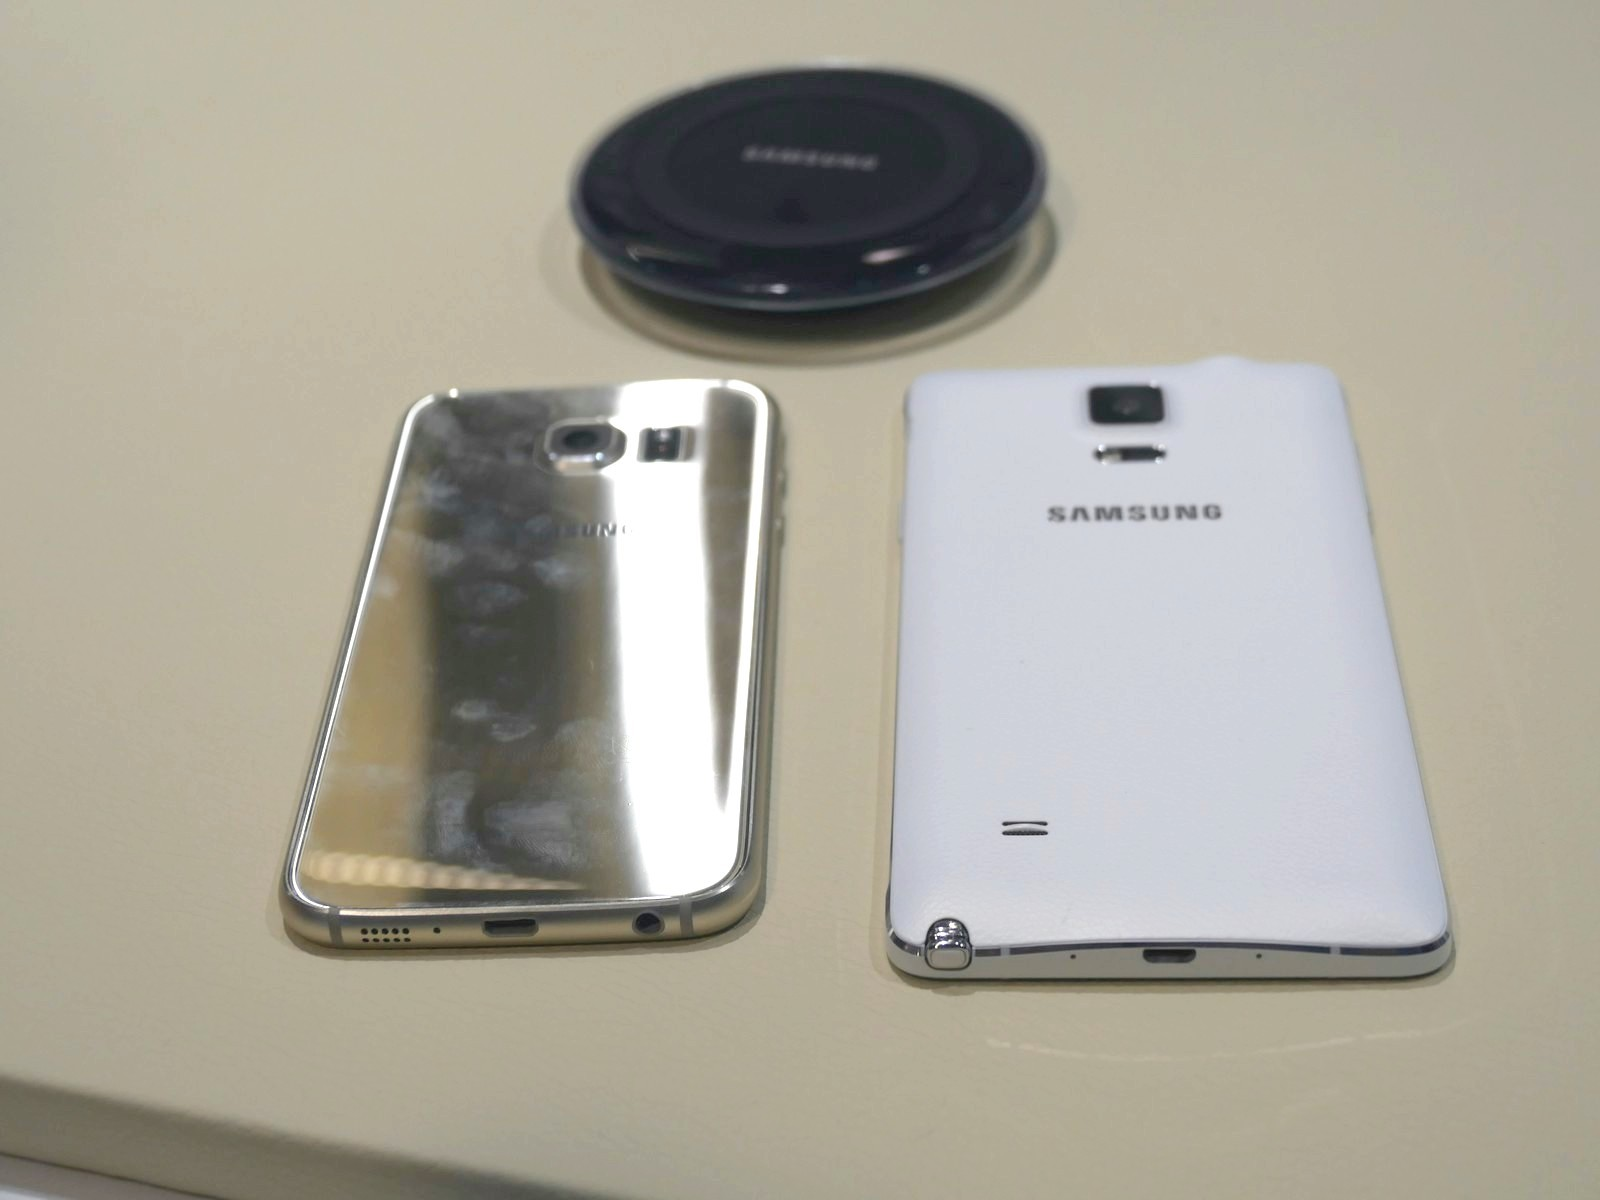 Samsung-Galaxy-S6-va-Samsung-Galaxy-Note-4